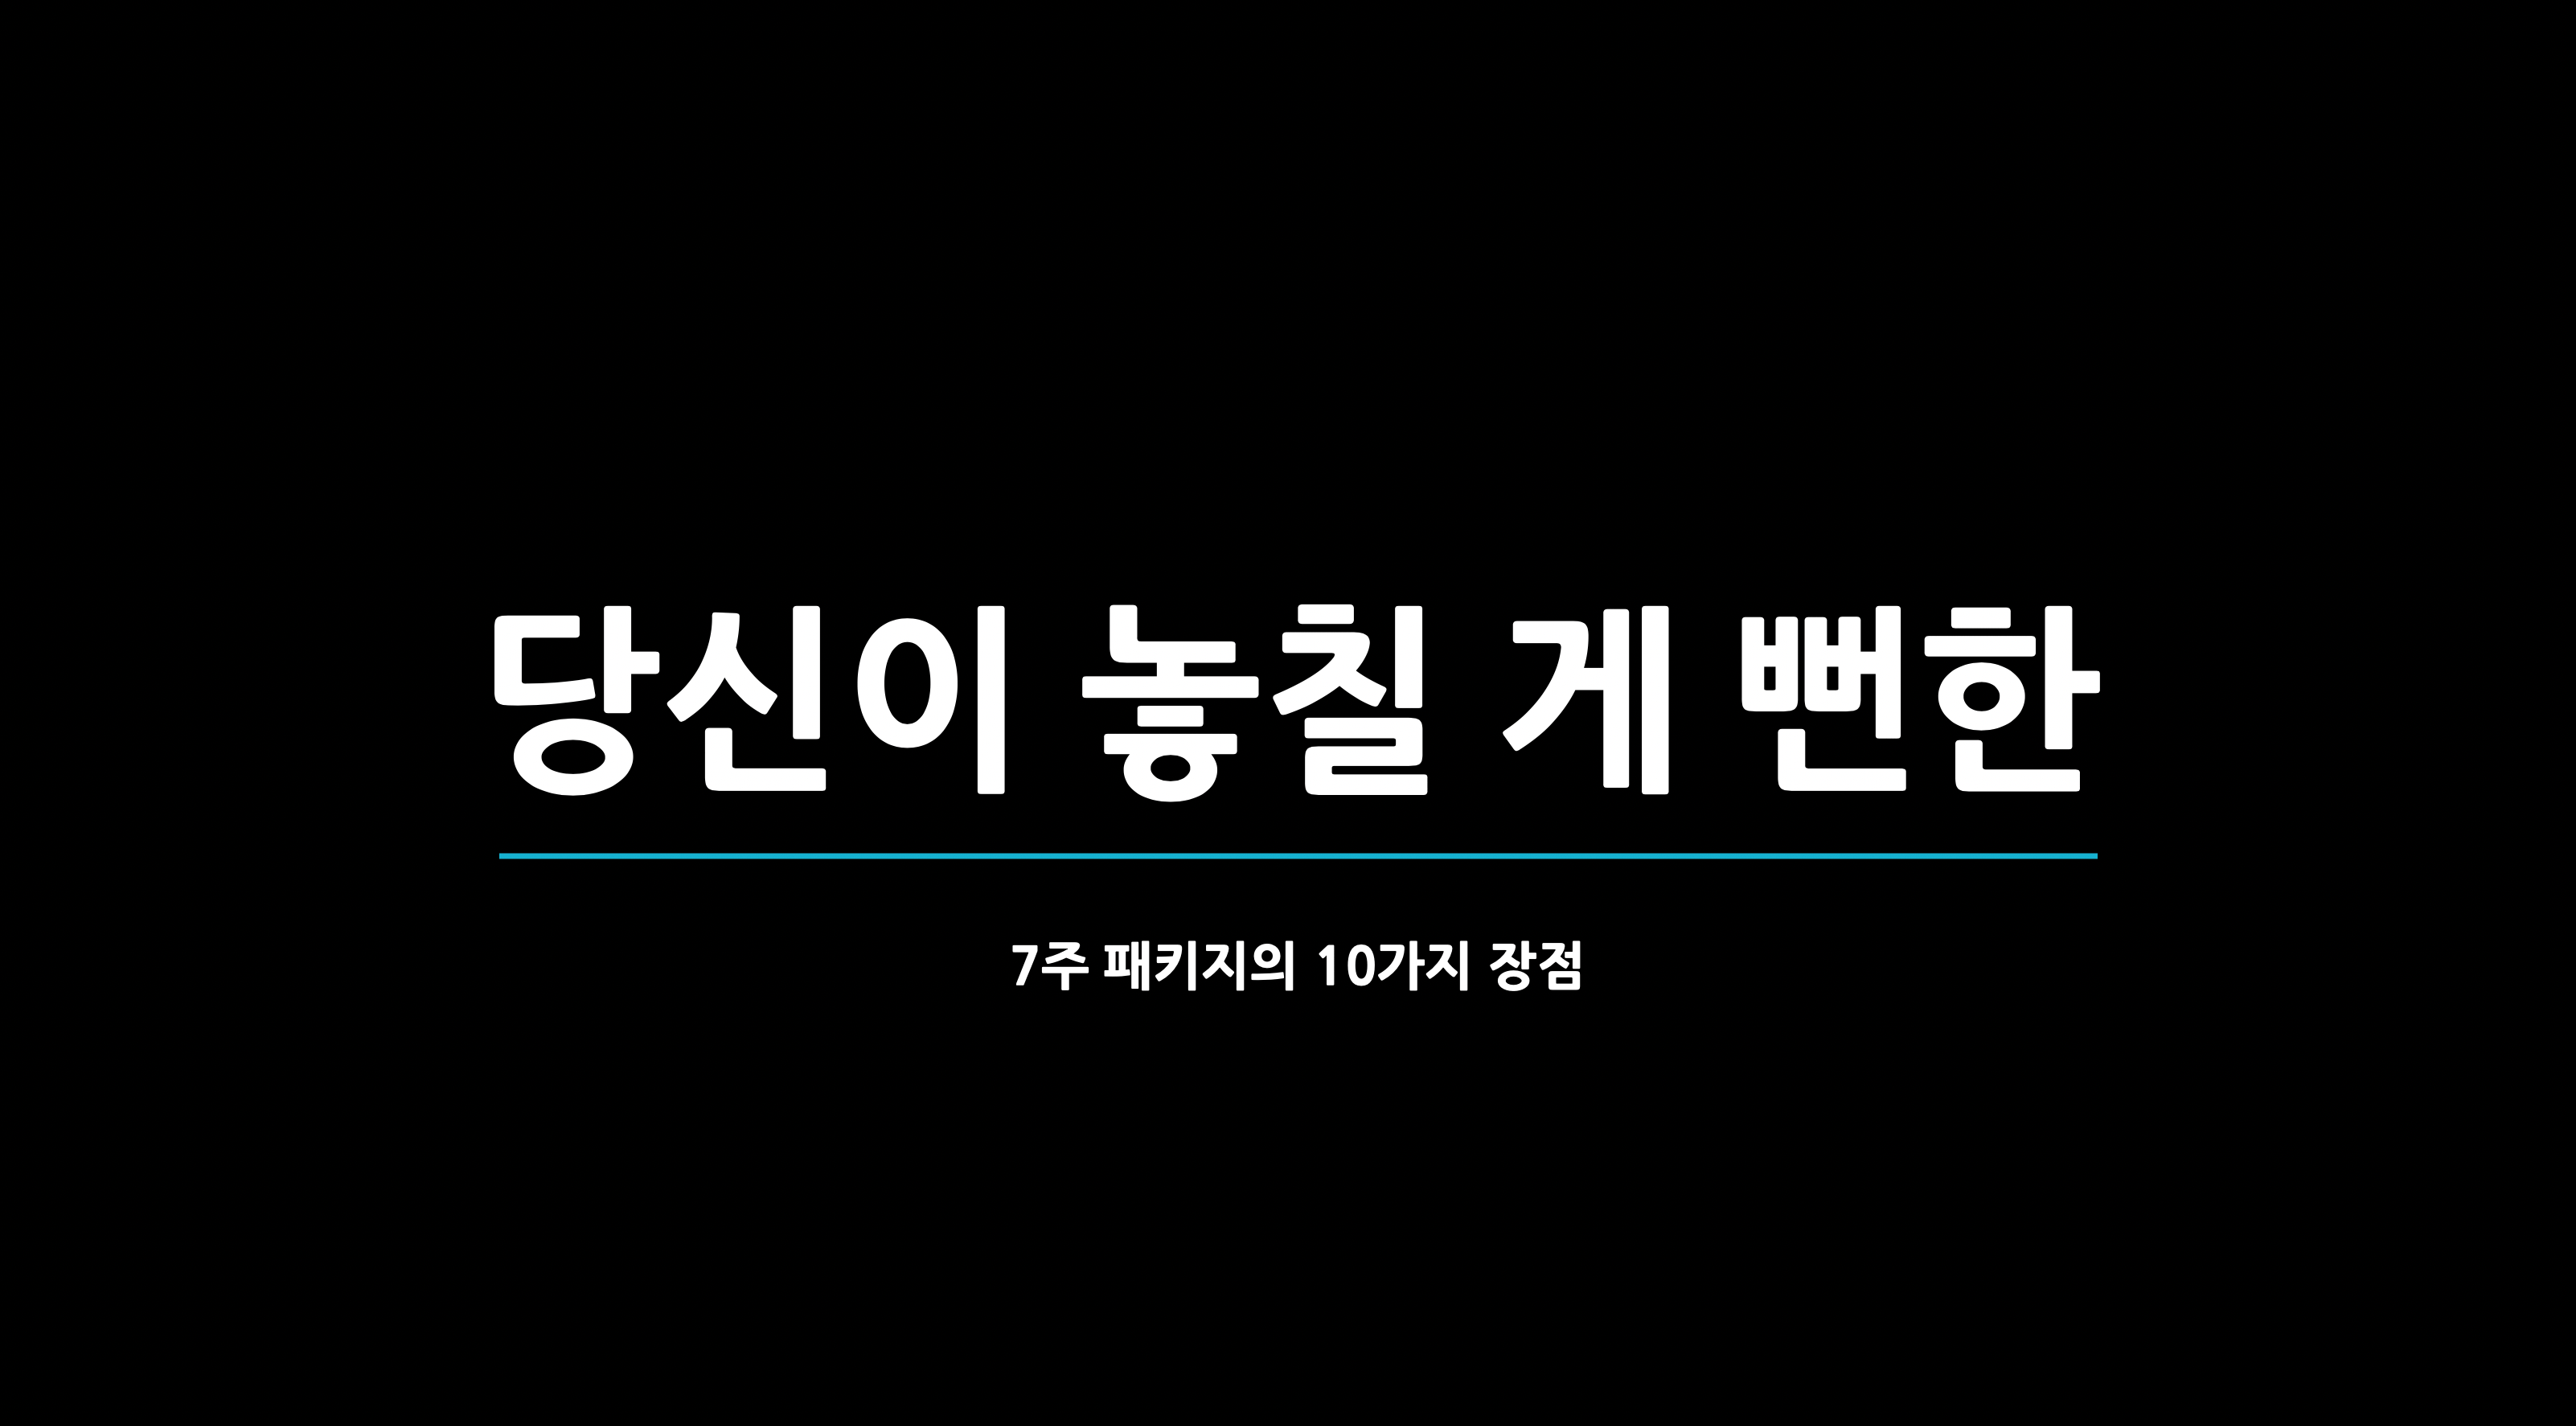 Banner-why-untact-7w-01